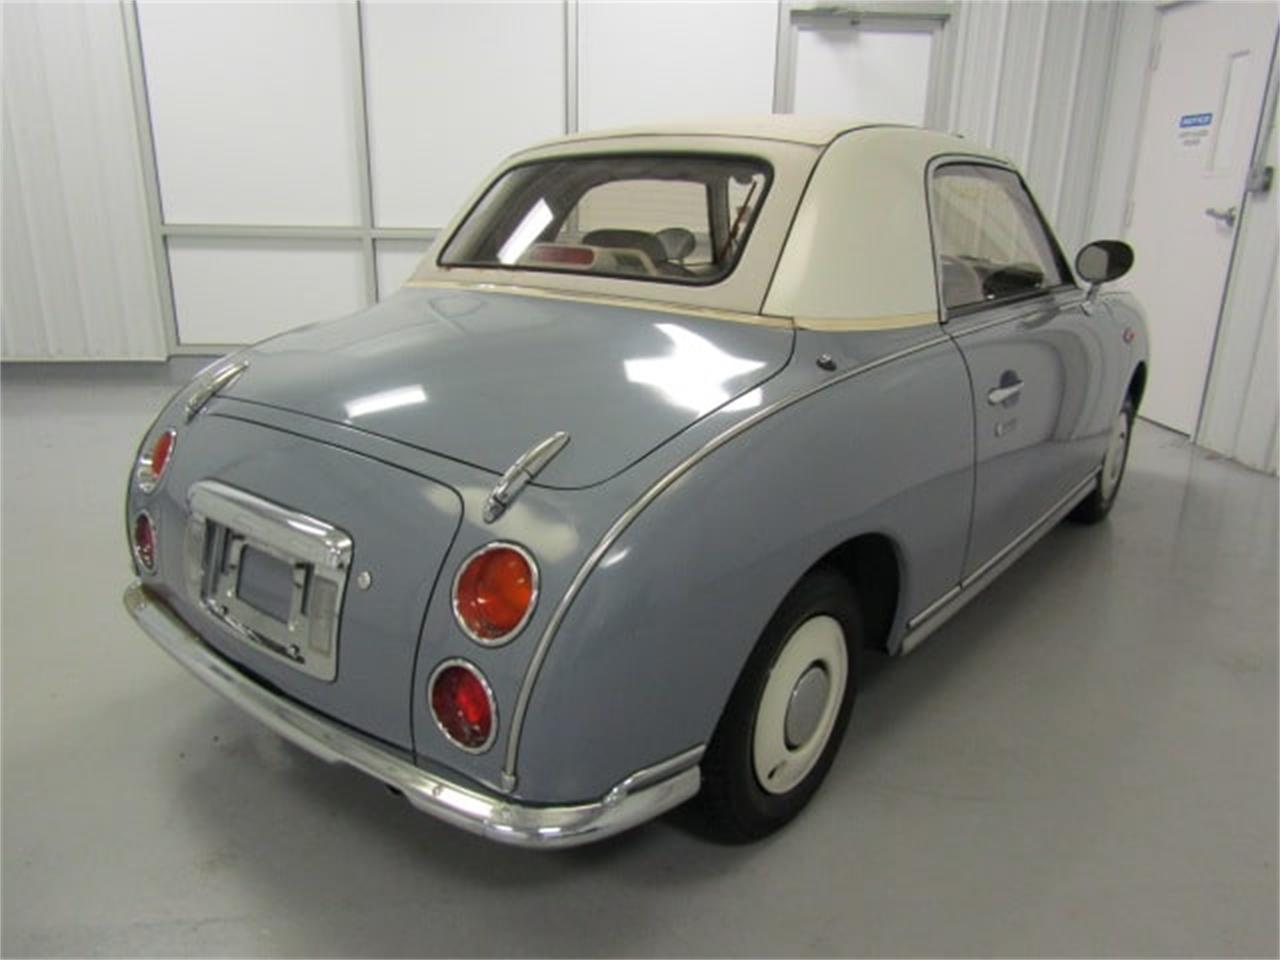 Large Picture of 1991 Nissan Figaro located in Virginia - $10,900.00 - JZ1Z